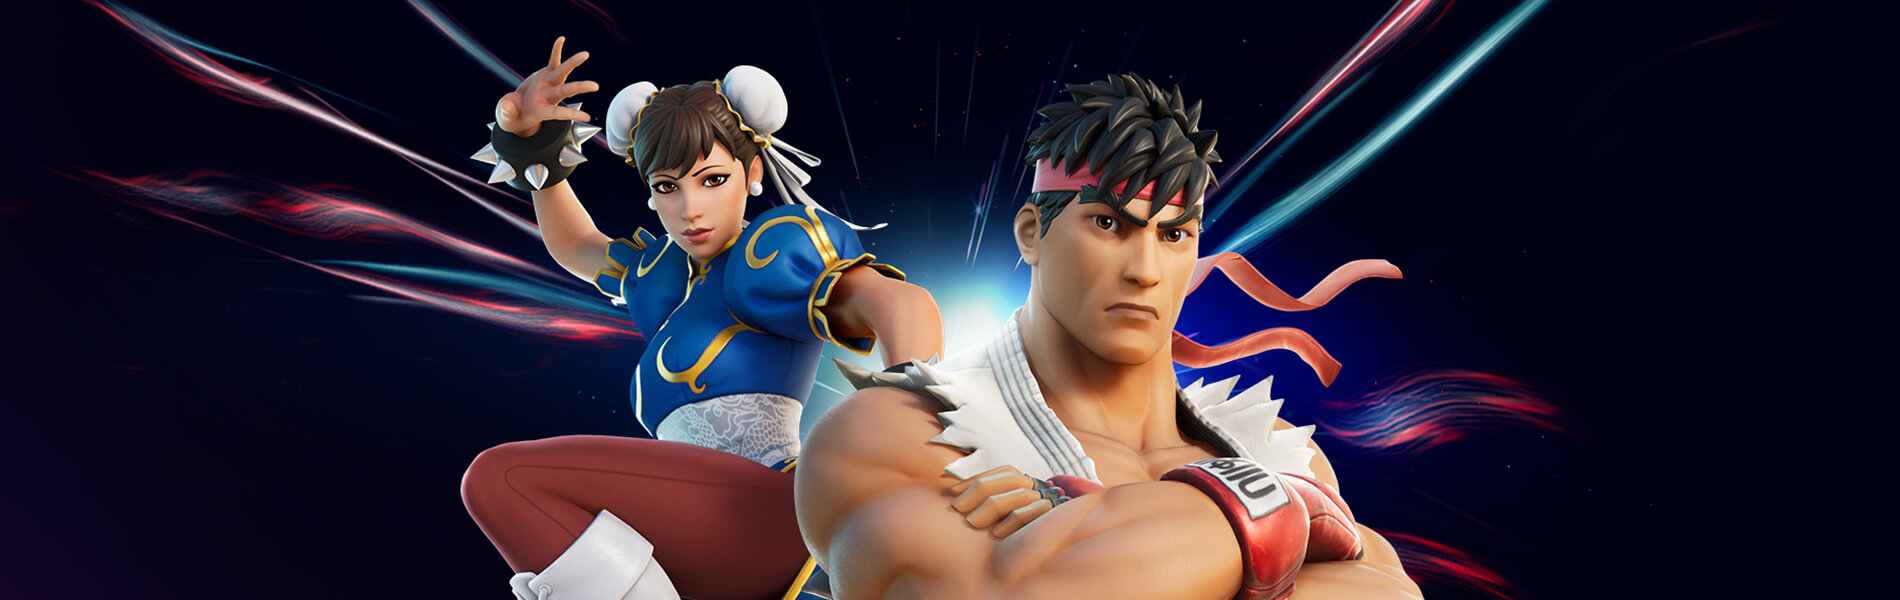 Primeira Rodada: Ryu e Chun-Li do Street Fighter se Enfrentam no Fortnite